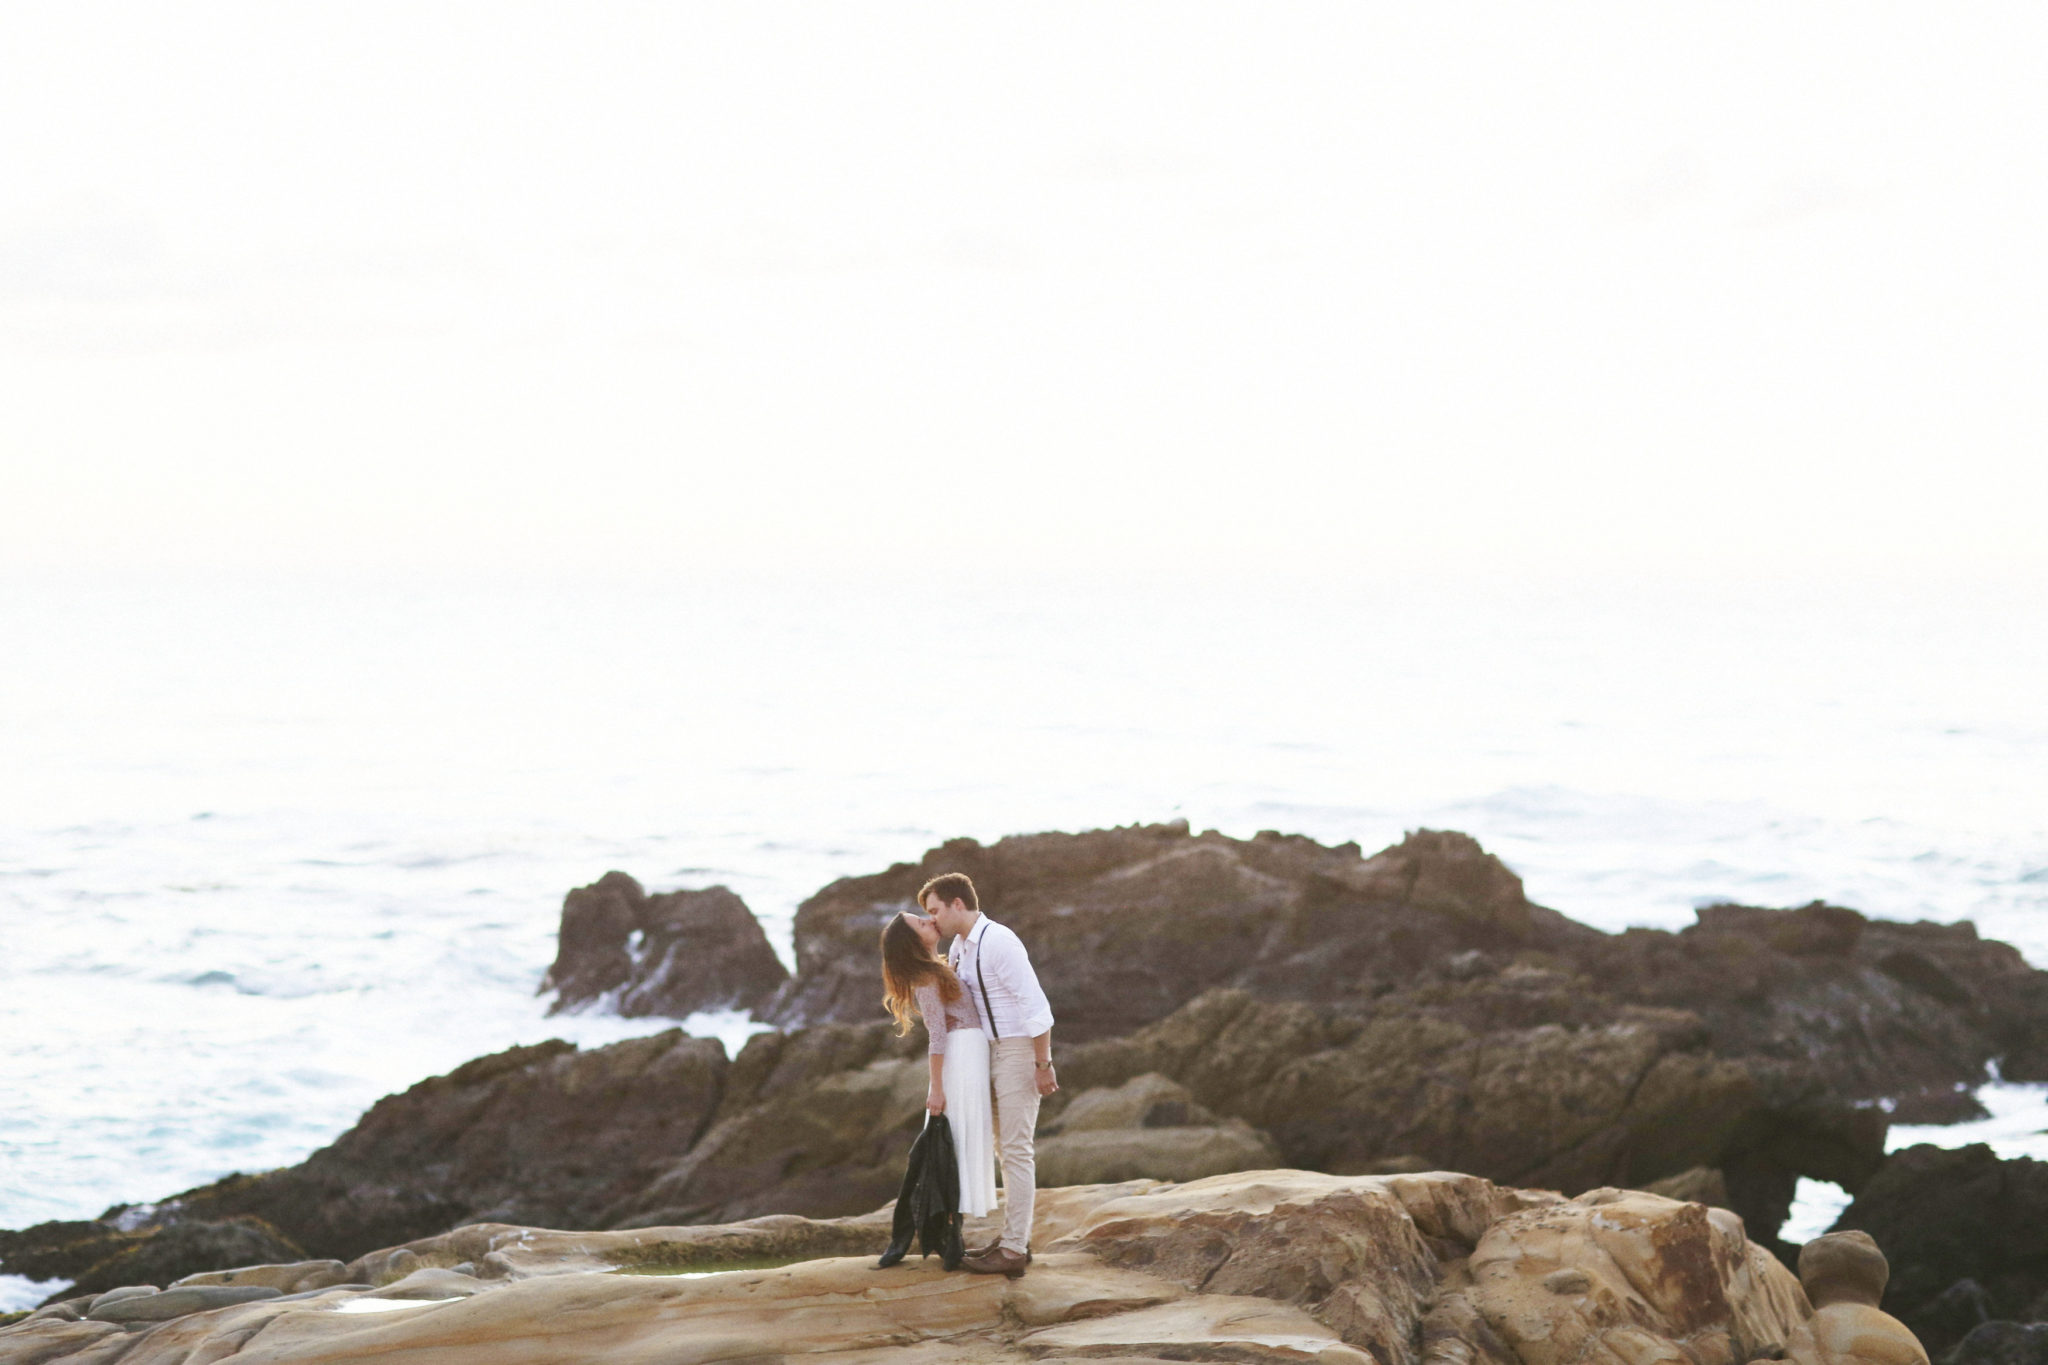 Our Kick Ass Organic Wedding: The Engagement Story